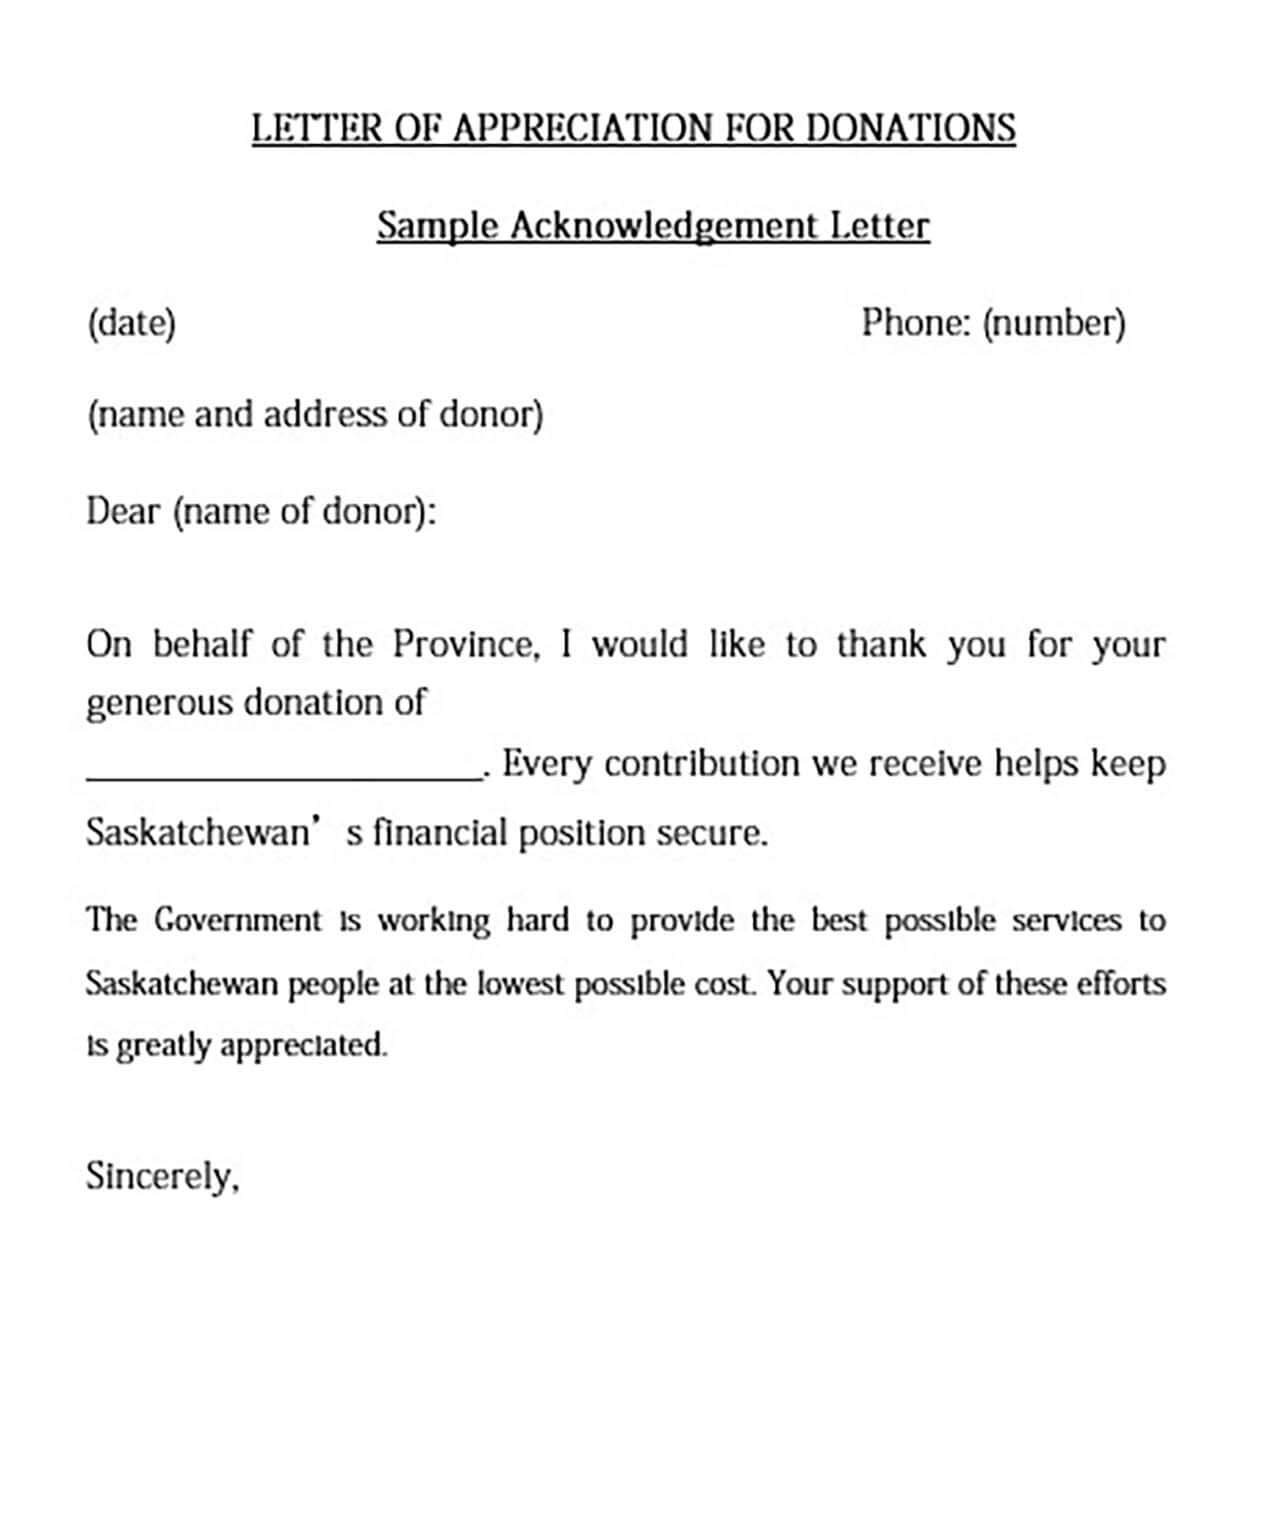 Donation Appriciation Thank You Letter